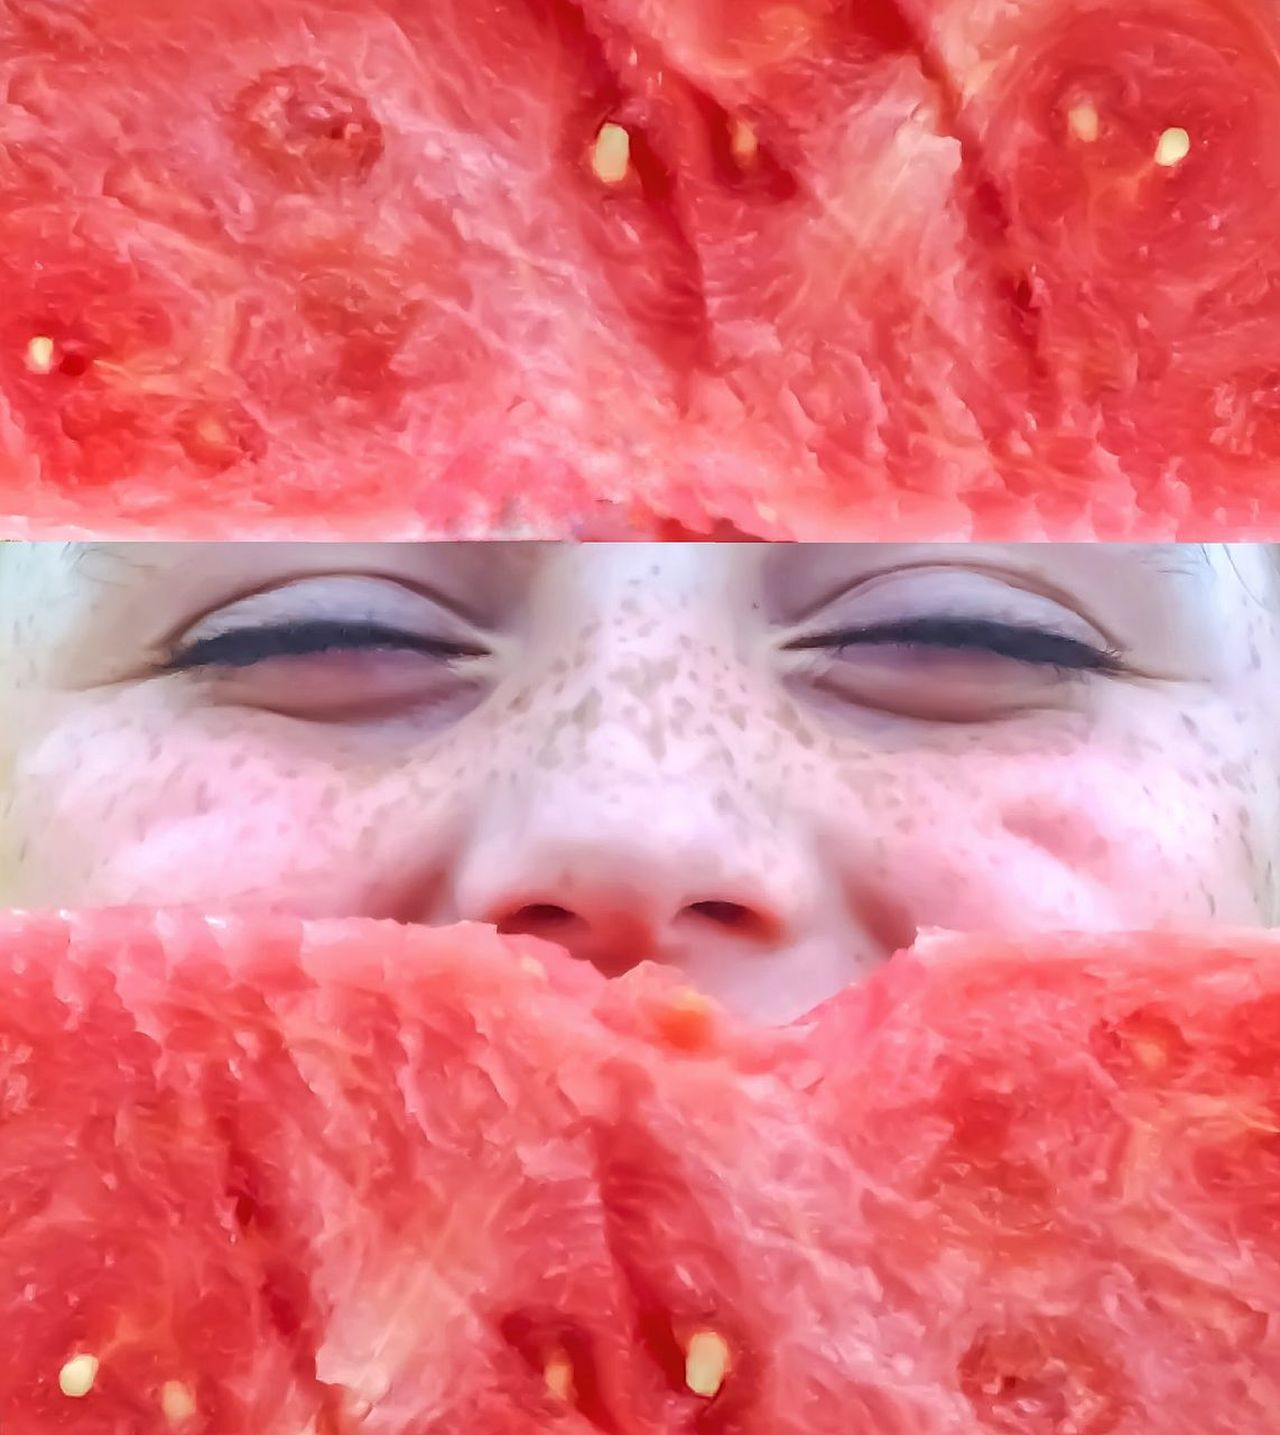 Double Exposure Cut And Paste Human Face Human Body Part Pink Color Headshot Portrait Girl Fruit Watermelon🍉 Slice Of Melon Picnic Food Eating Outdoors Summer Food Healthy Lifestyle Freshness Children Only Close-up Eyes Hidden Face Eyes Only Rule Of Thirds Sections Natural Frame BYOPaper! Visual Feast